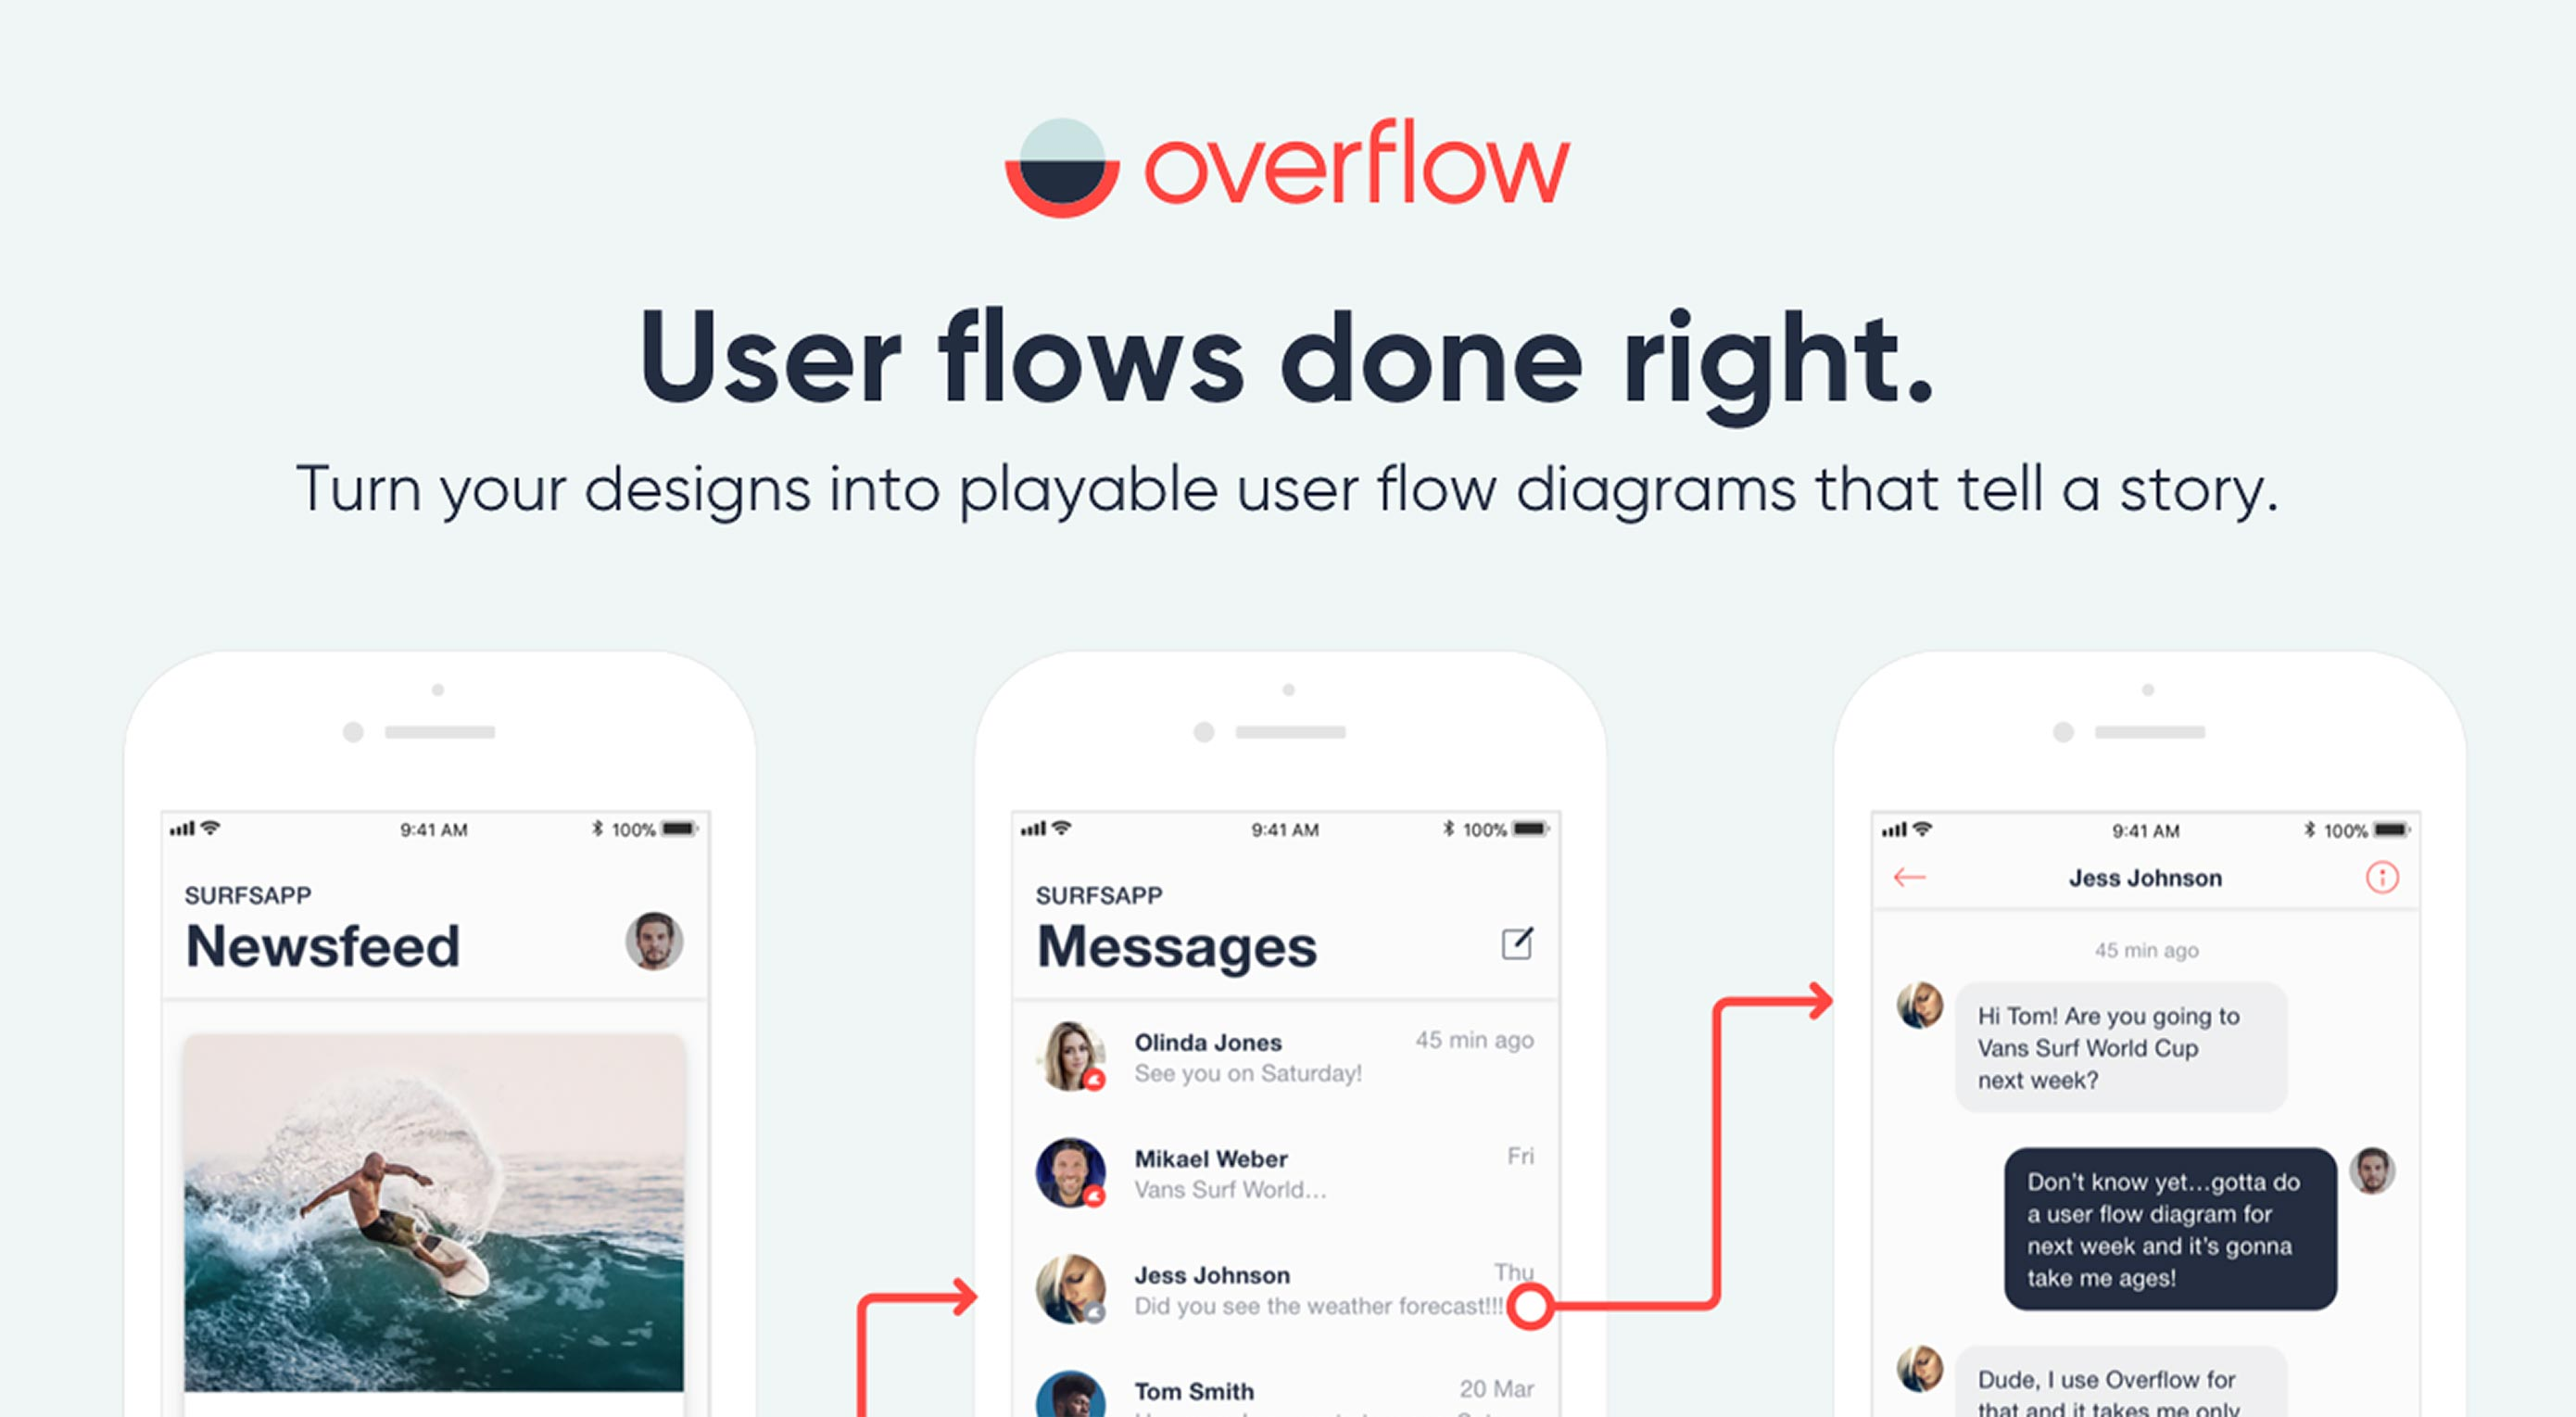 Overflow – Turn Your Designs into Playable User Flow Diagrams That Tell a Story